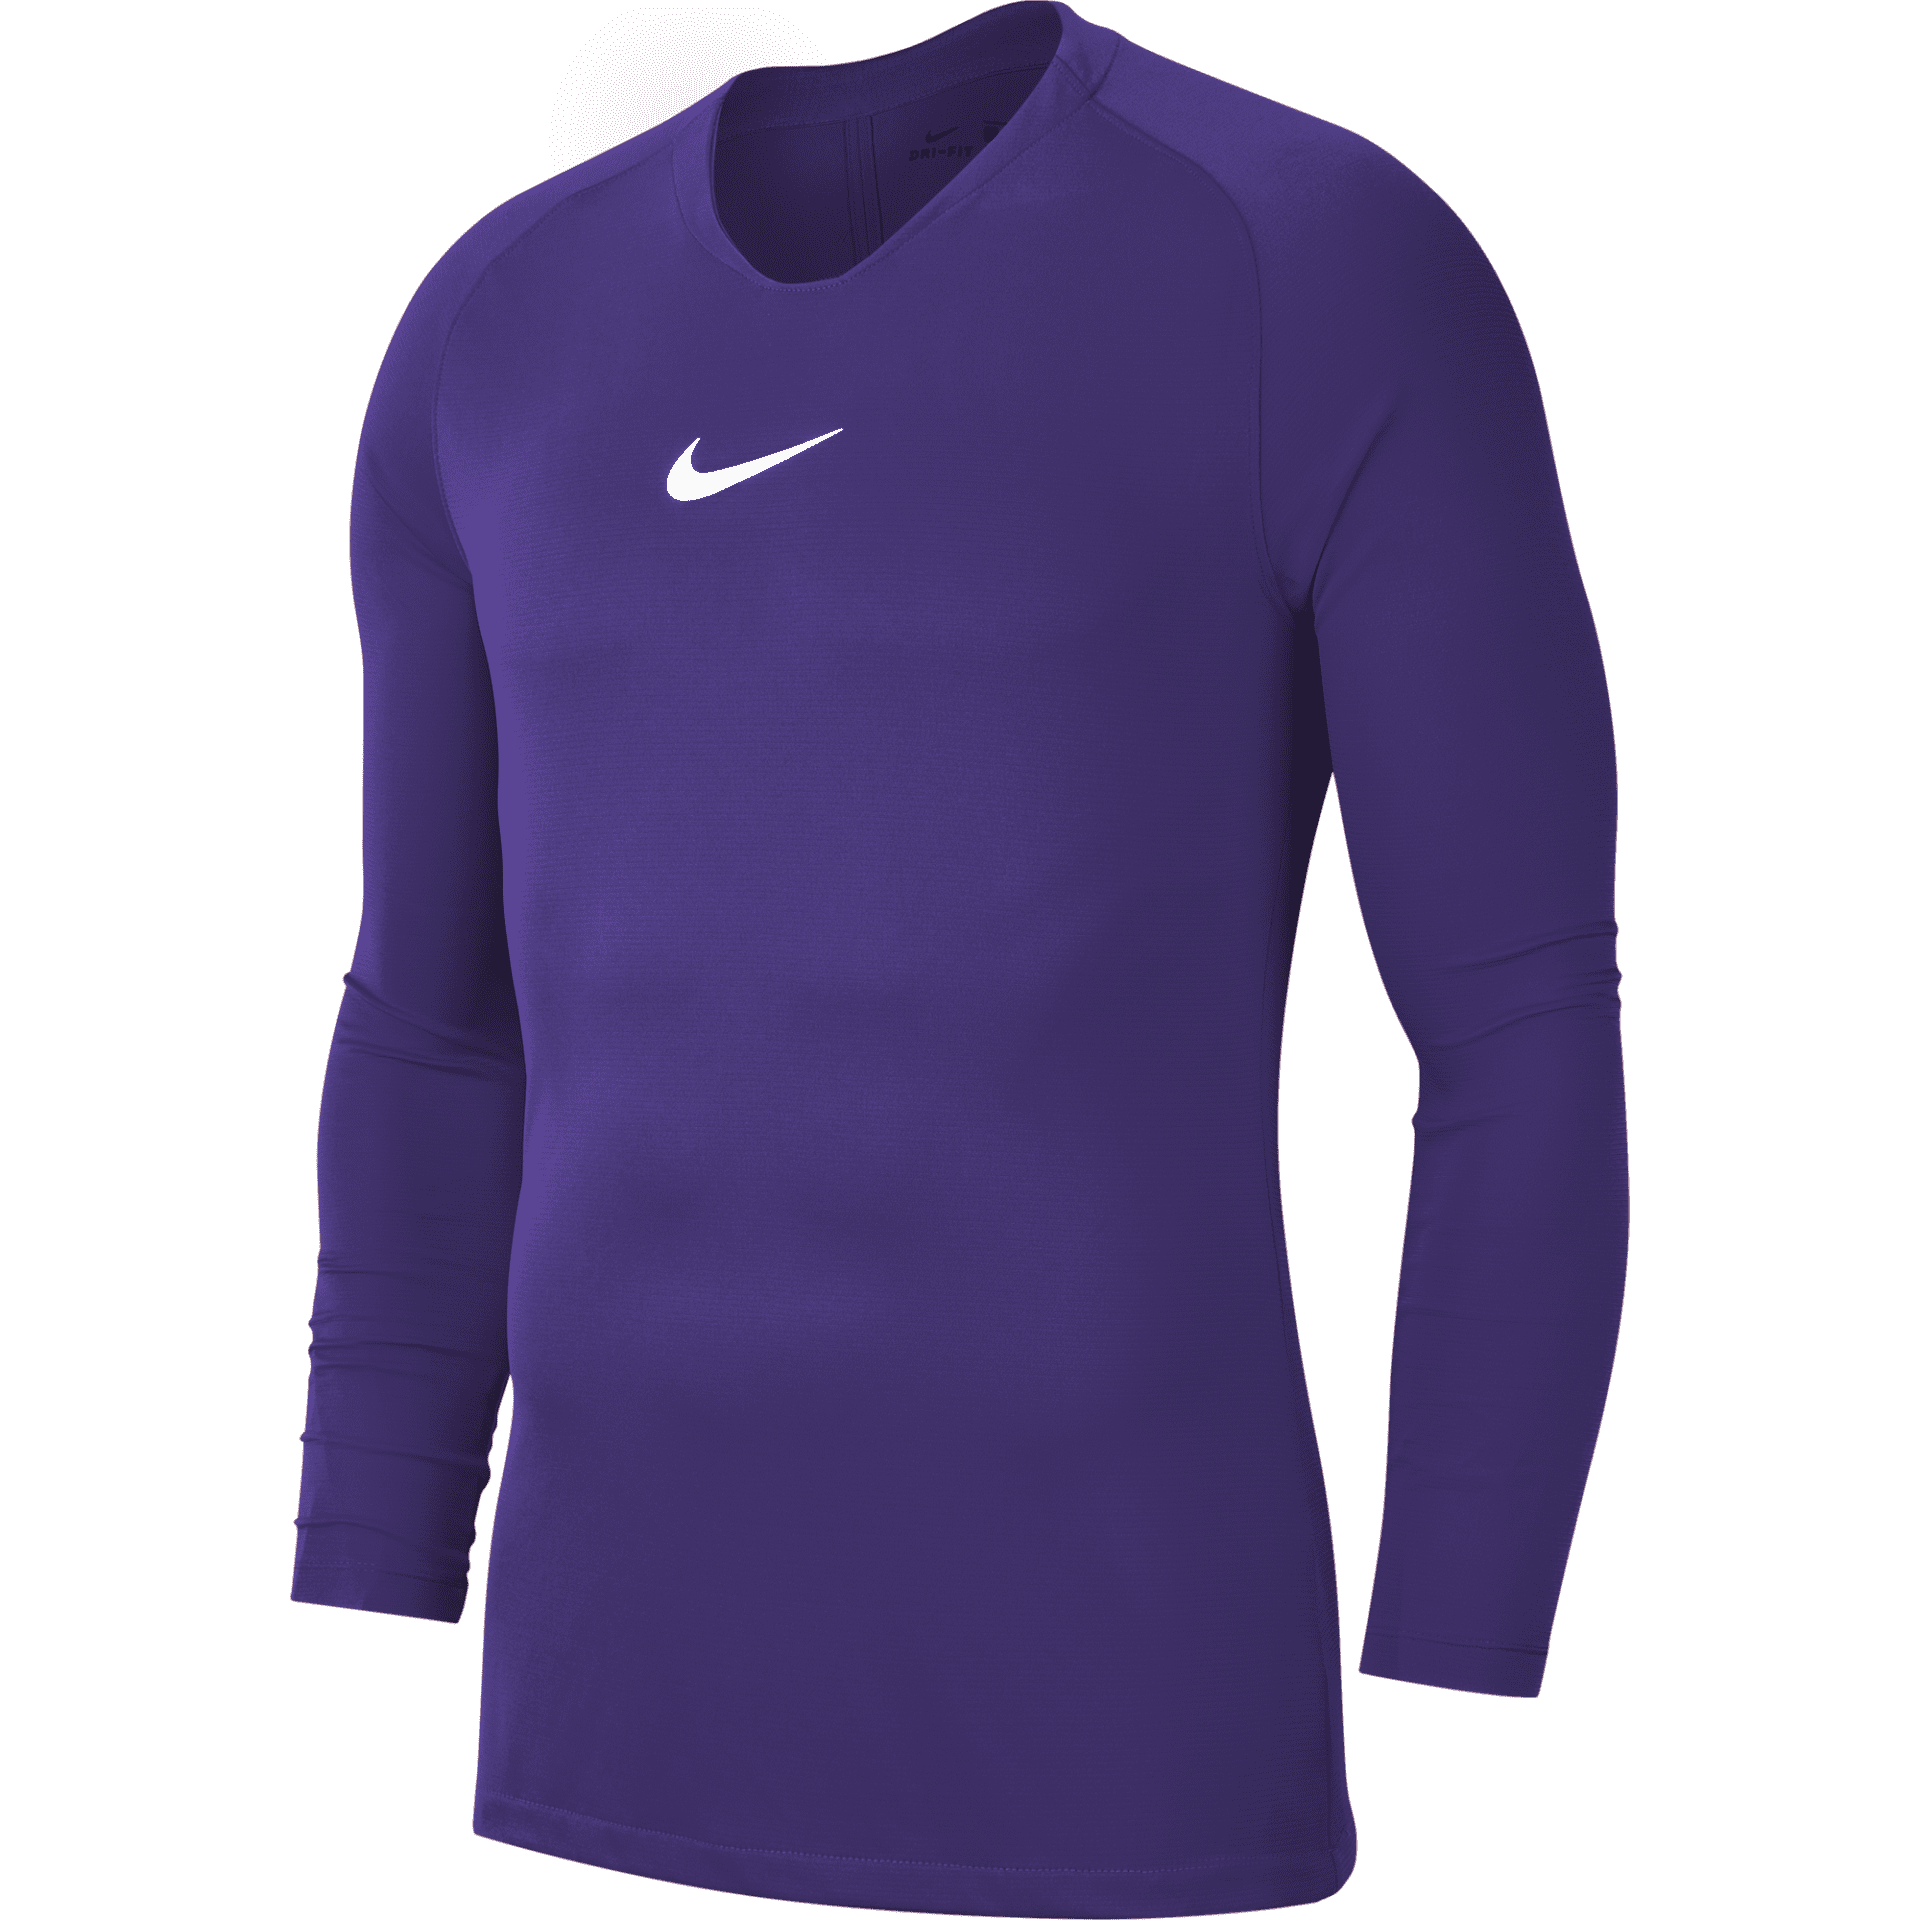 larne youth first layer purple  34464 p